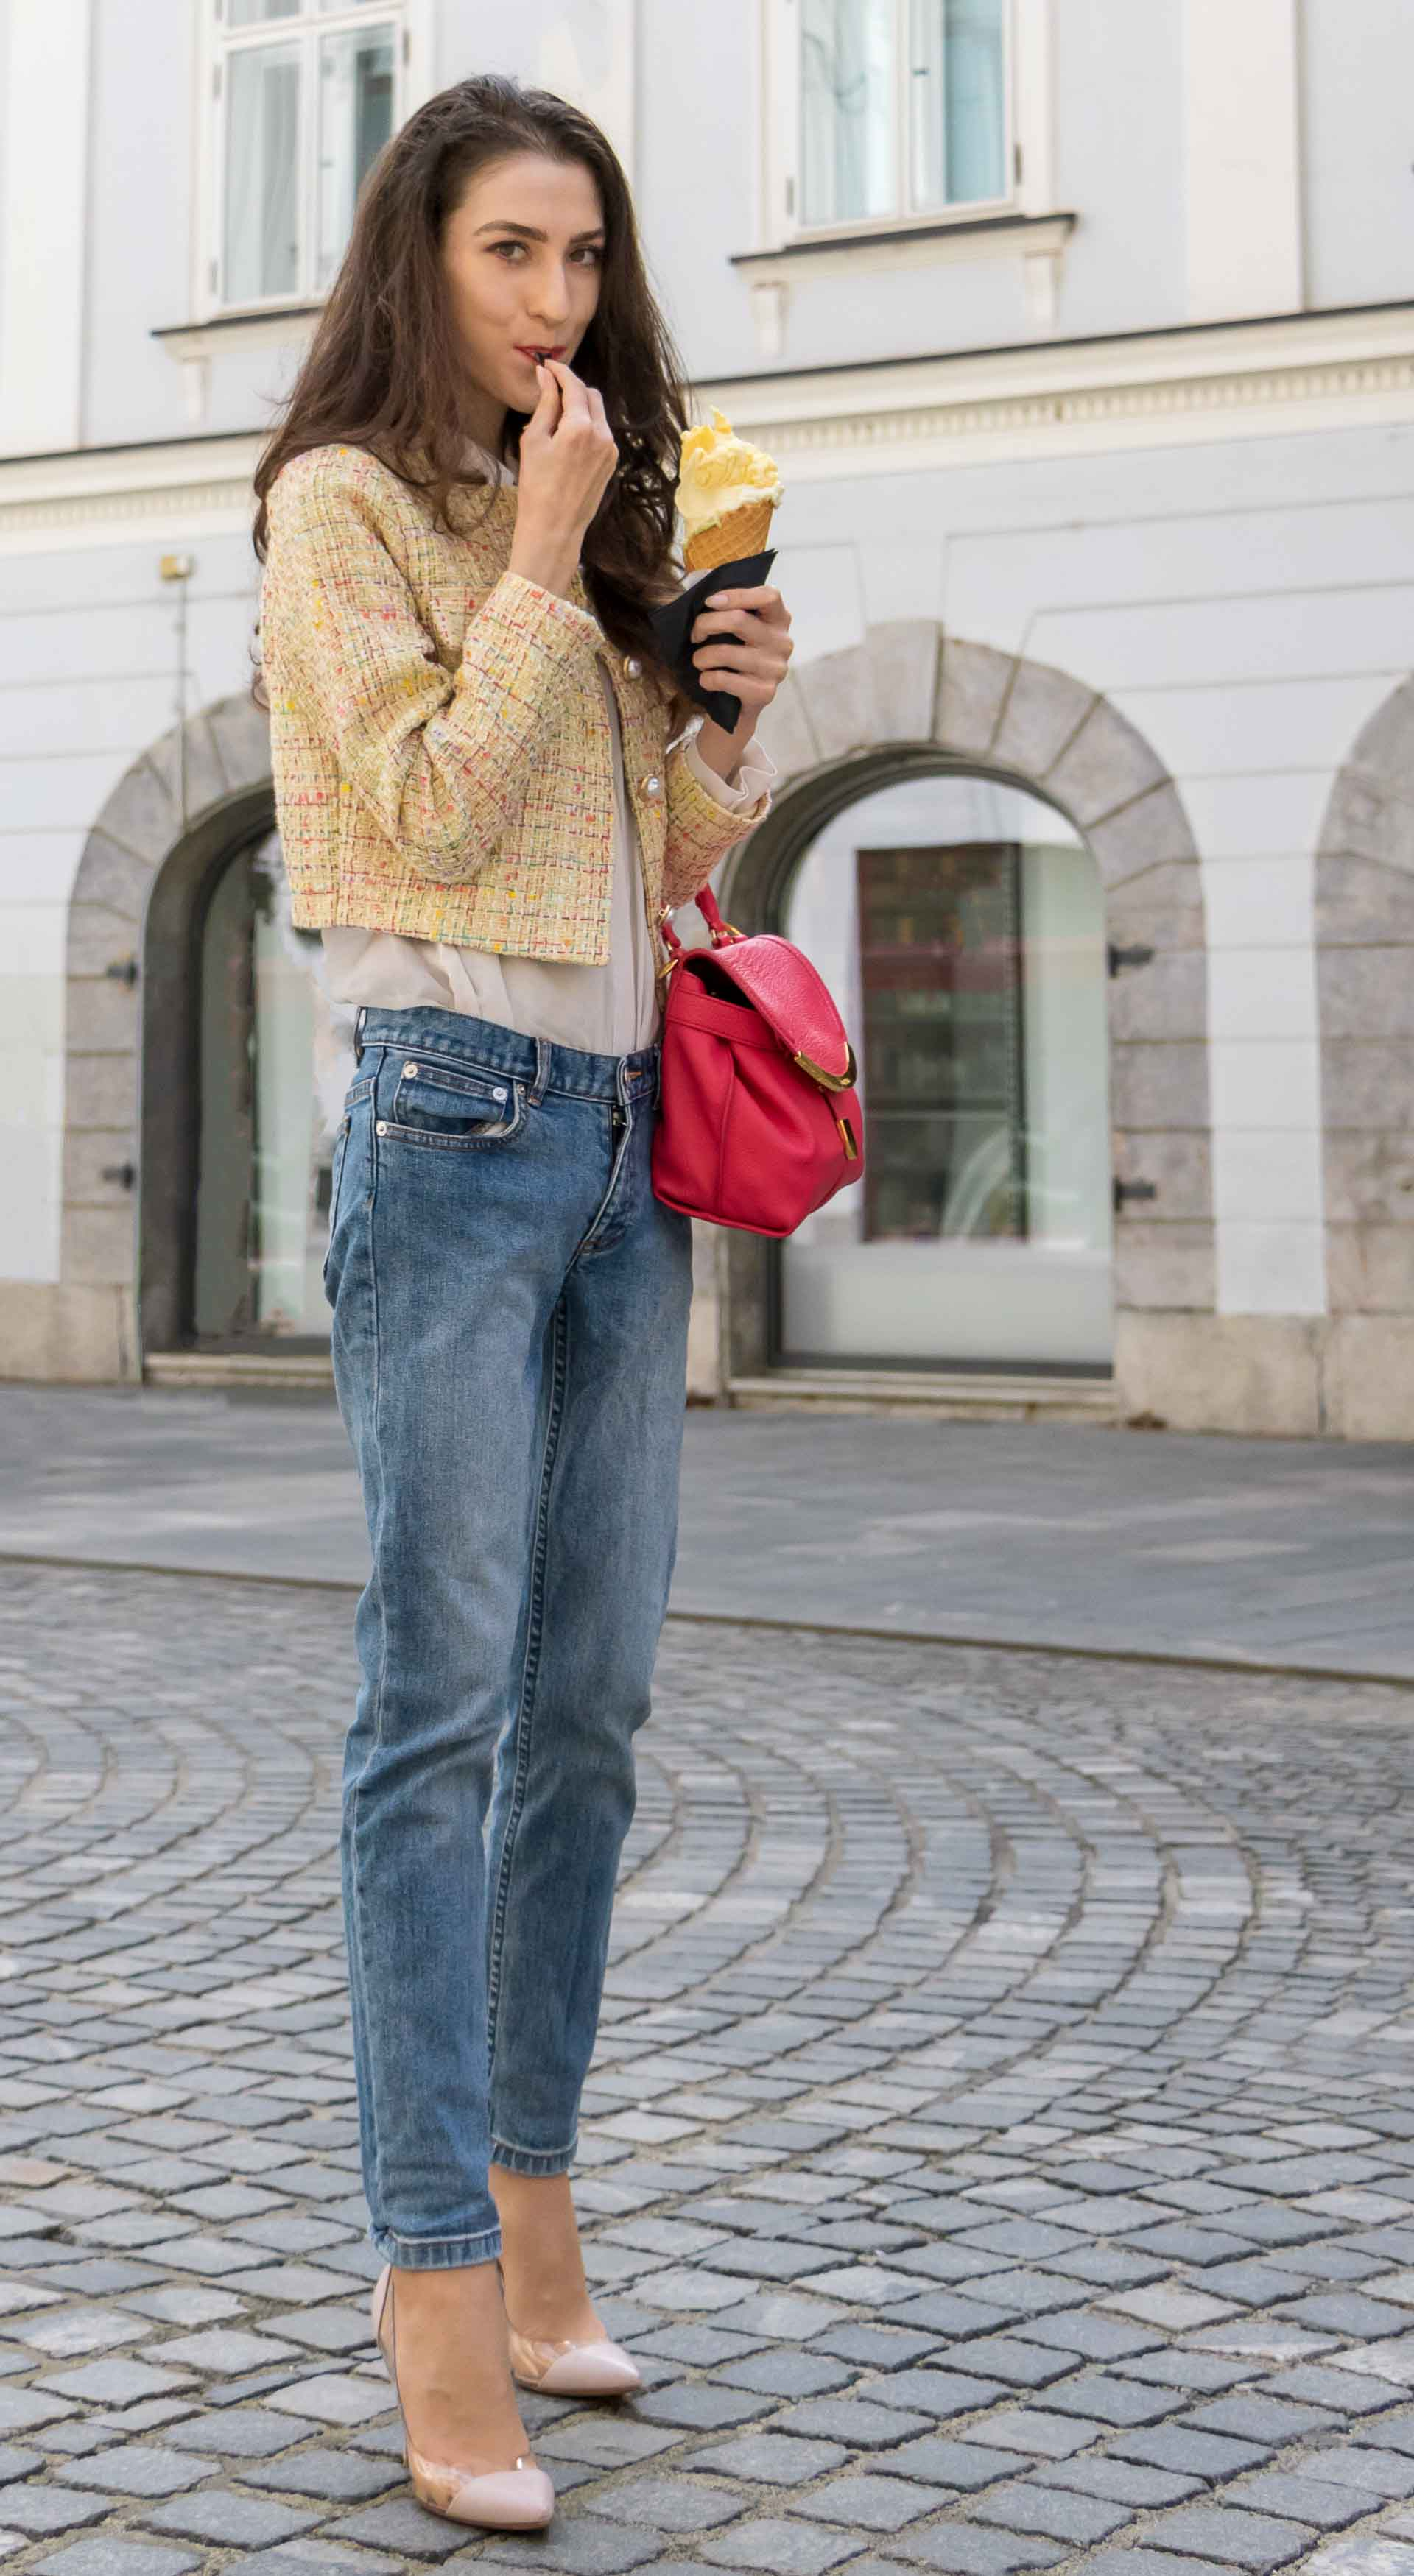 Veronika Lipar Fashion Blogger of Brunette from Wall Street wearing chic casual everyday spring outfit, the yellow tweed jacket from Storets, blue jeans from A.P.C., blush Gianvito Rossi plexi pumps, pink top handle bag and organza white shirt while eating ice cream in a cone